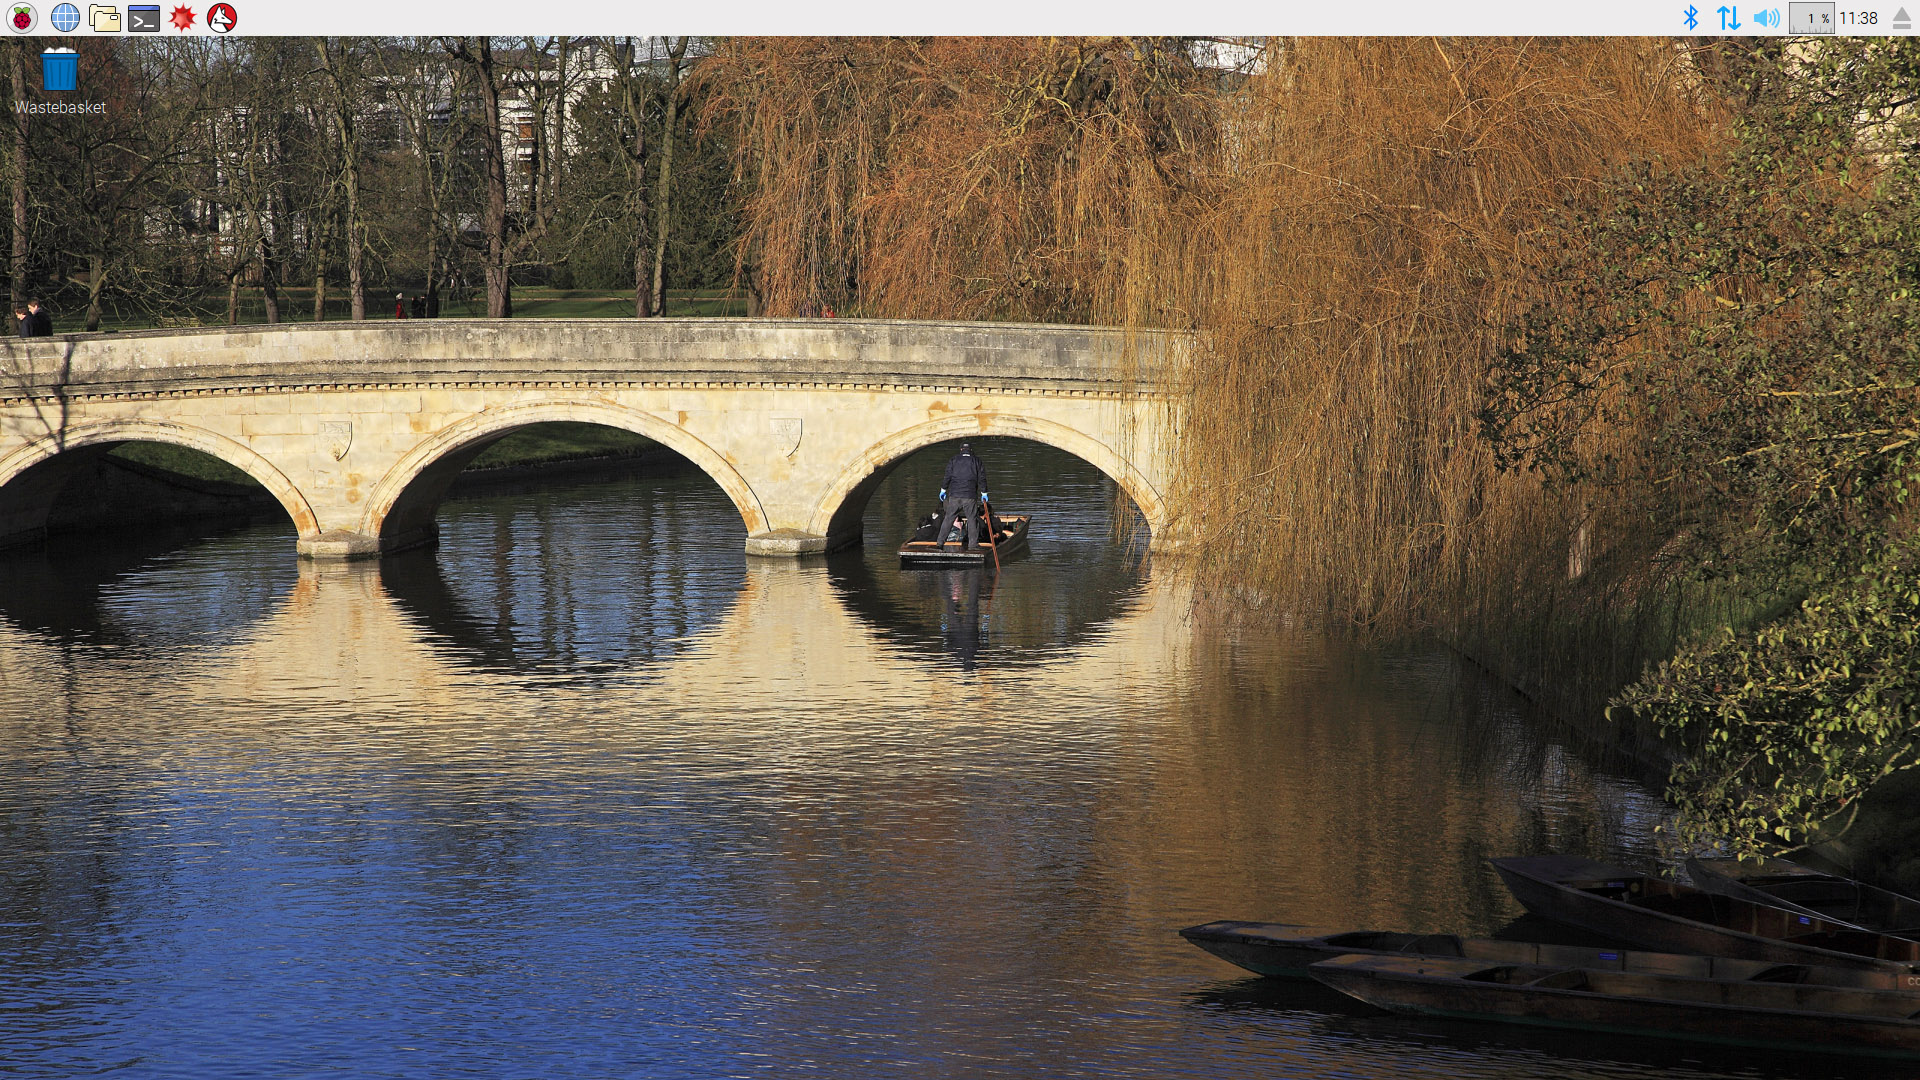 A bridge over the River Cam